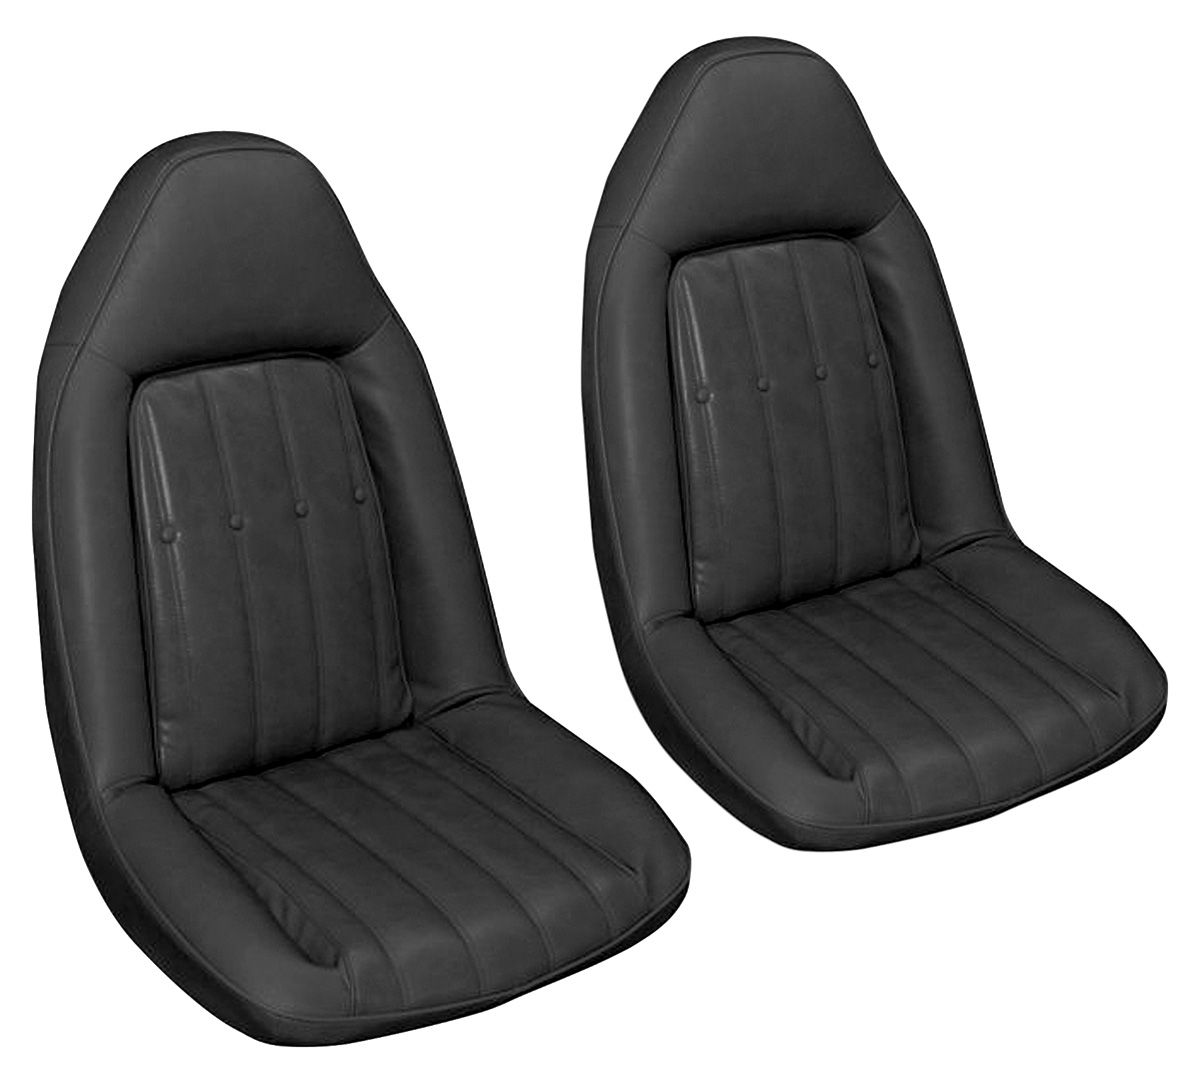 Seat Upholstery Kit, 1975-76 Monte Carlo, Split-Bench/Coupe